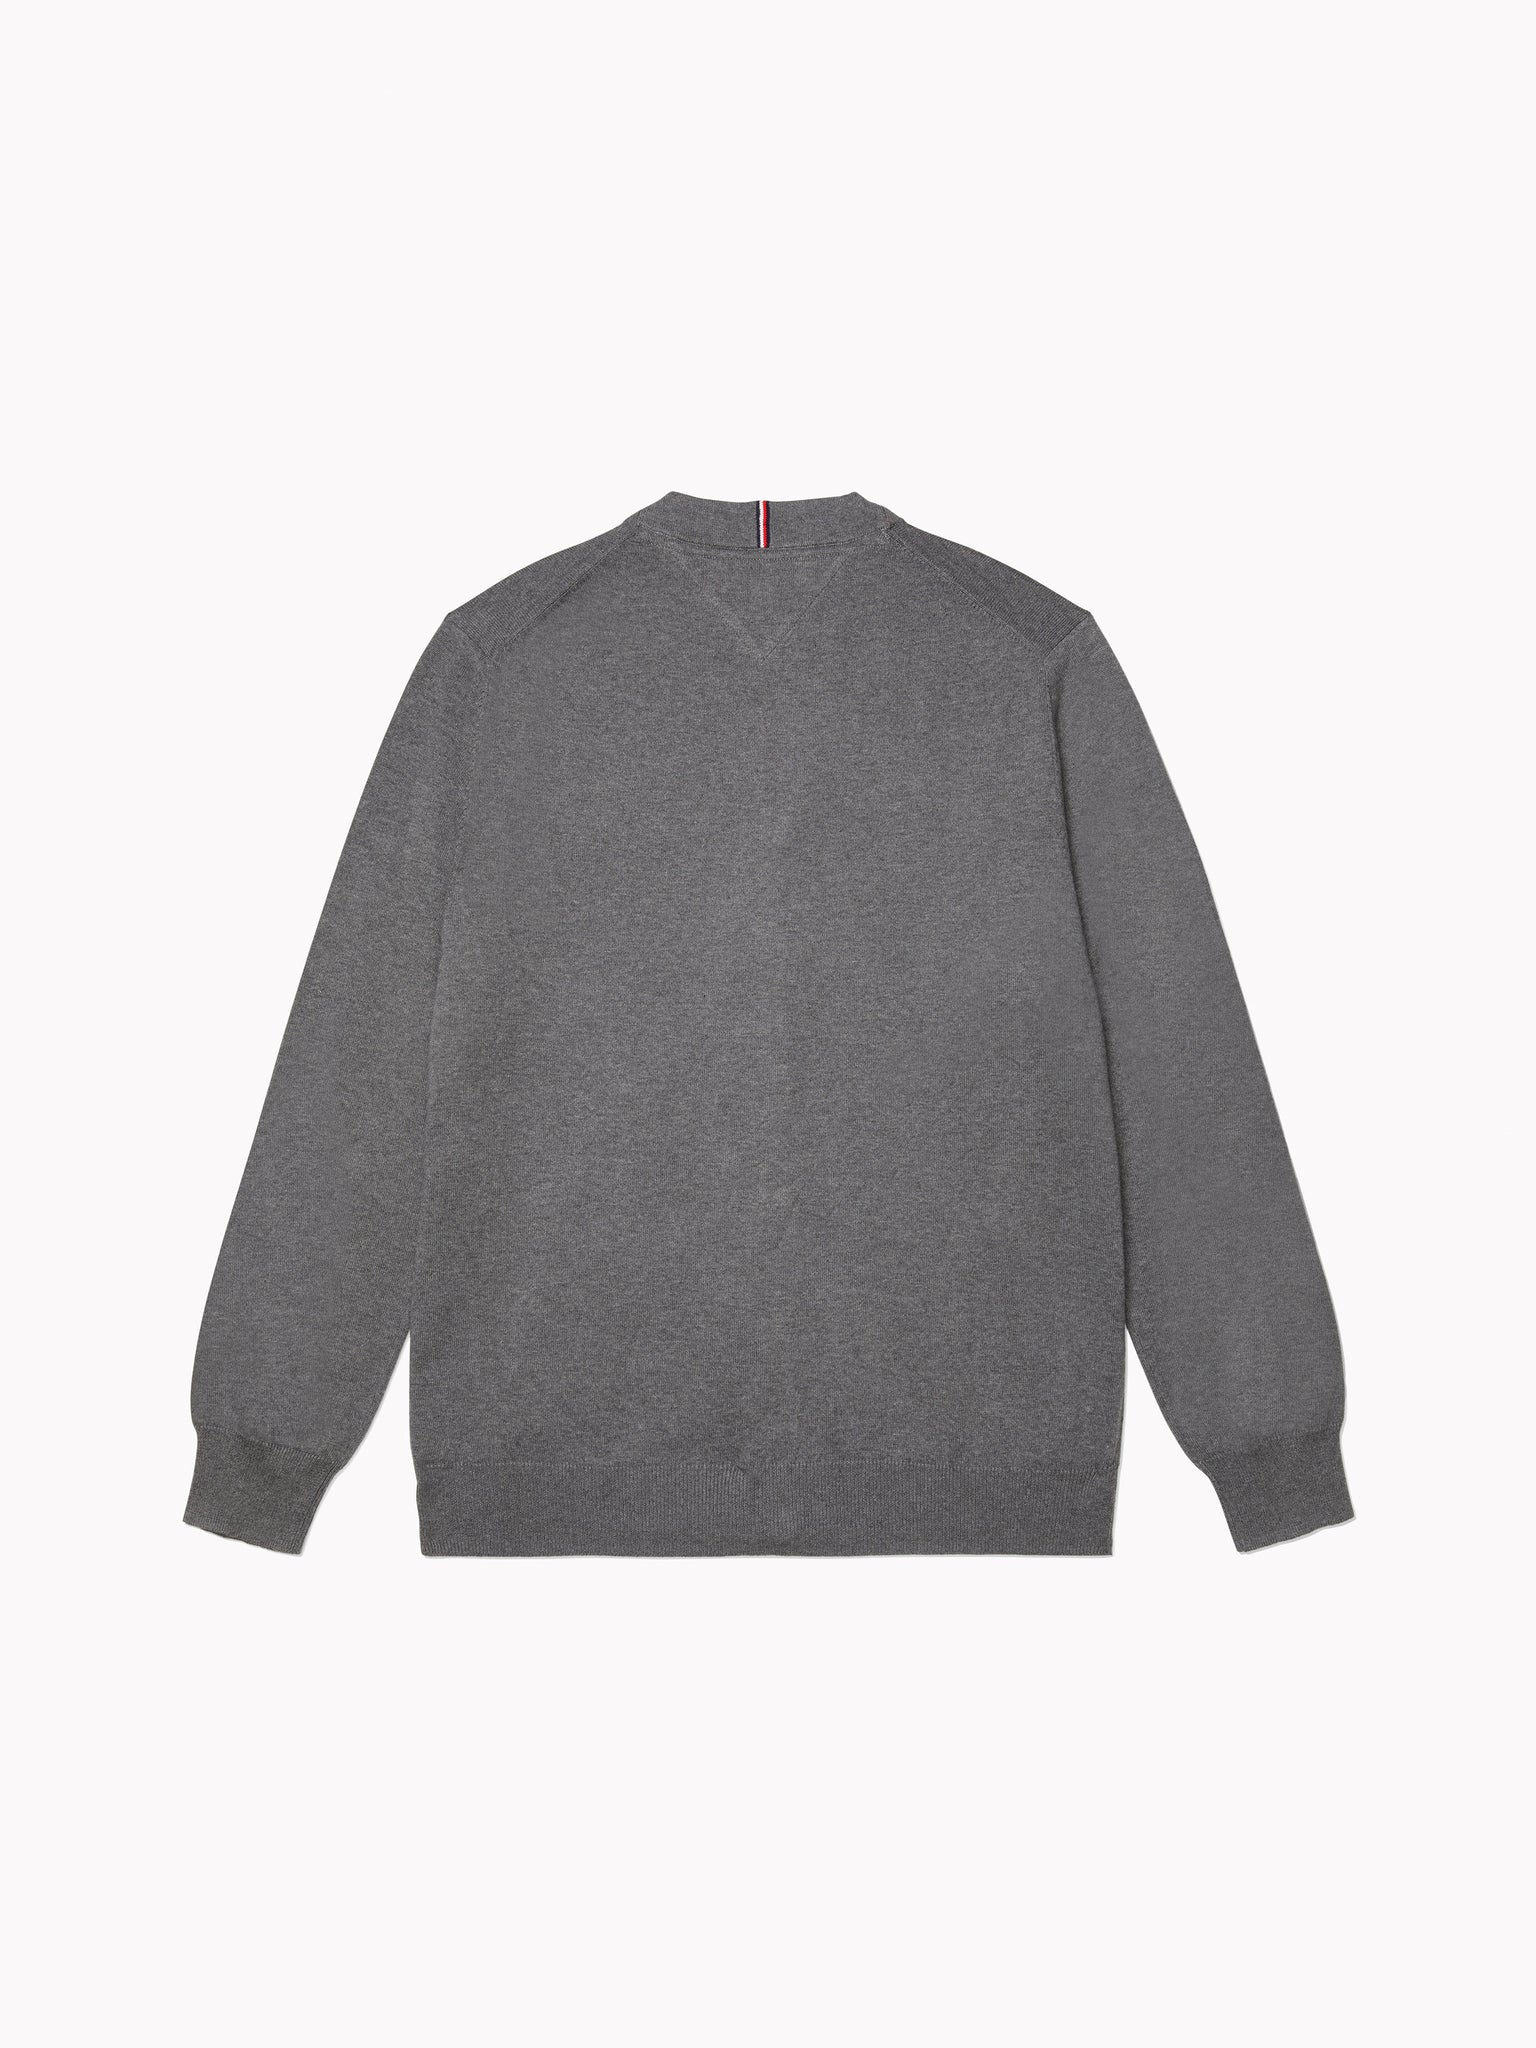 Atlantic Sweater (Mens) - Grey Heather